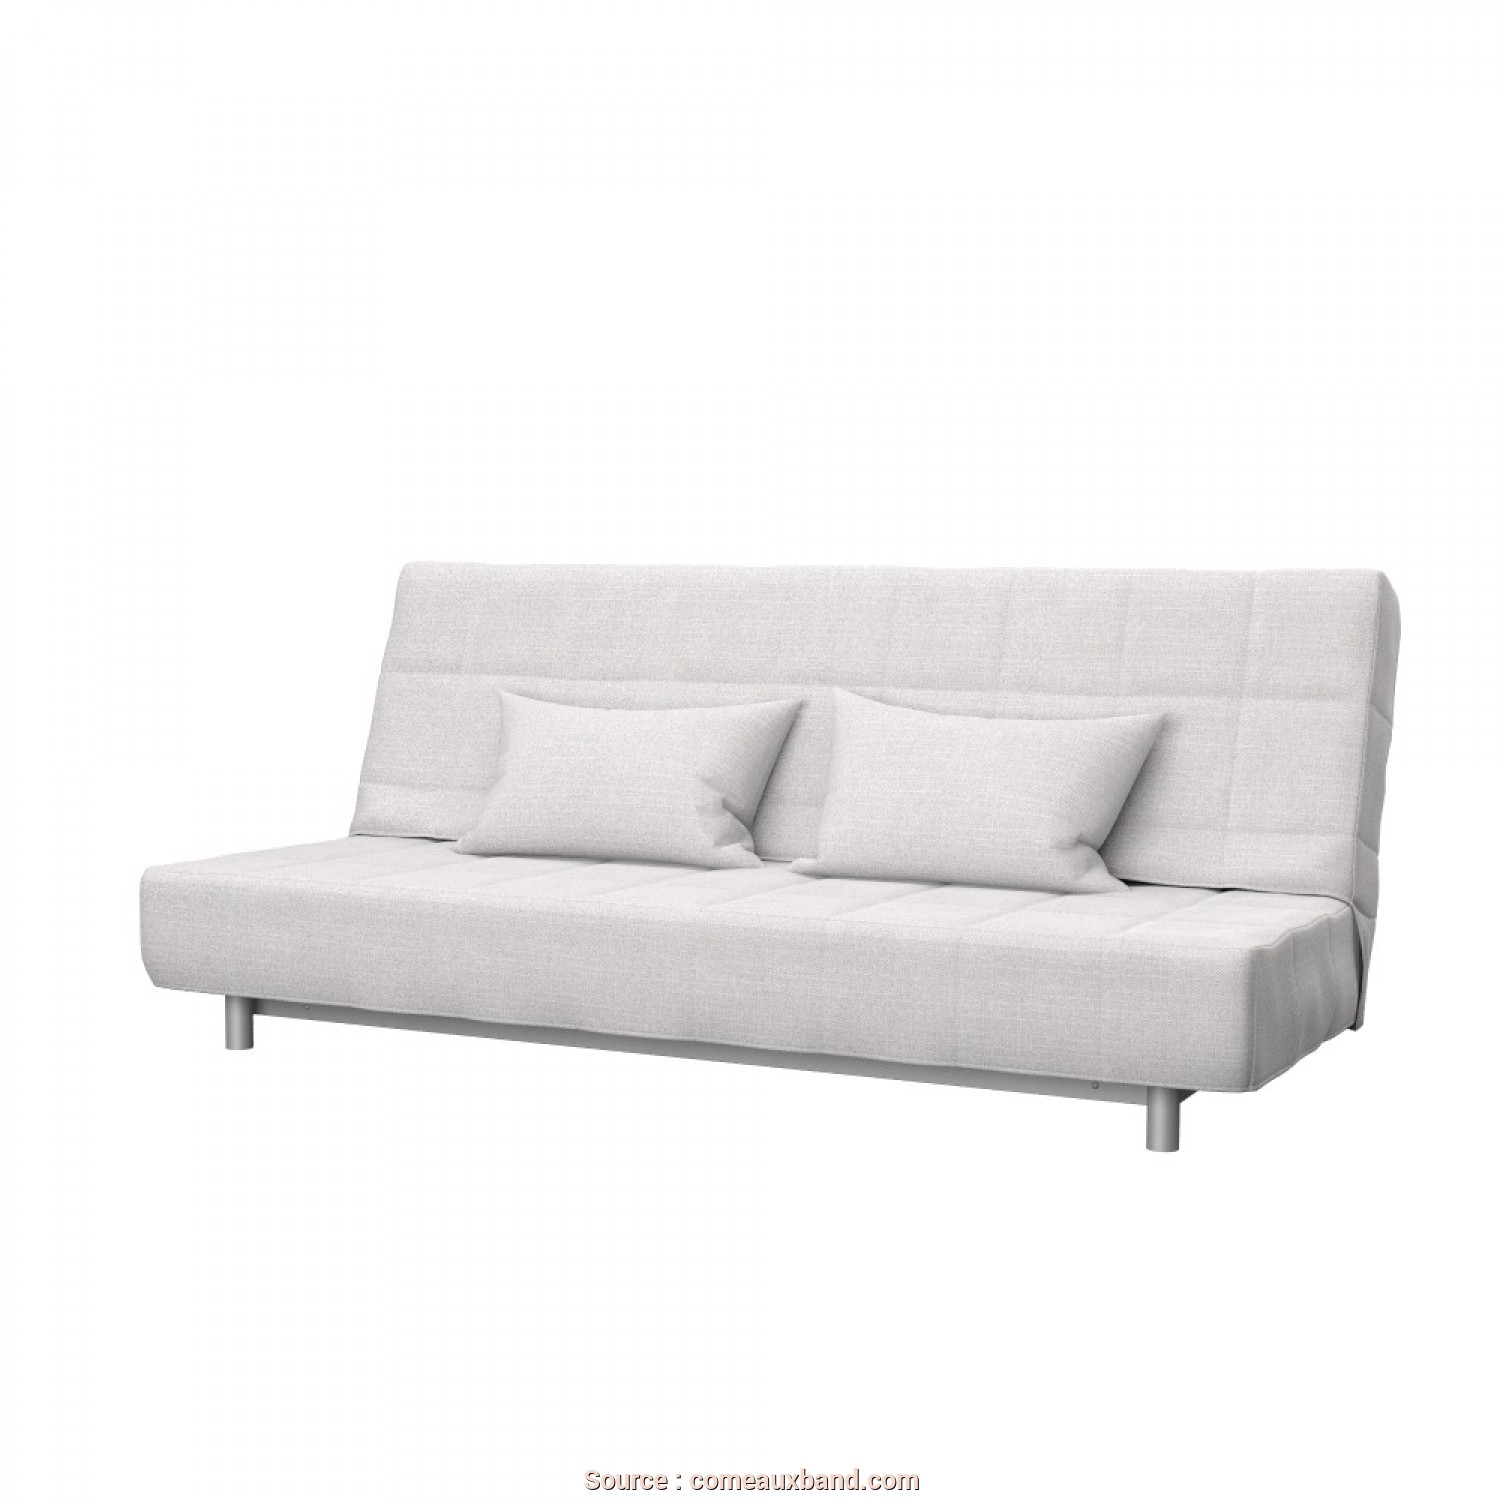 Futon Ikea Fr, Magnifico IKEA BEDDINGE 3 Seat Sofa, Cover Soferia Beautiful Sofa, In White With, Pillows Fr Your Living Room Futon Ikea Beddinge